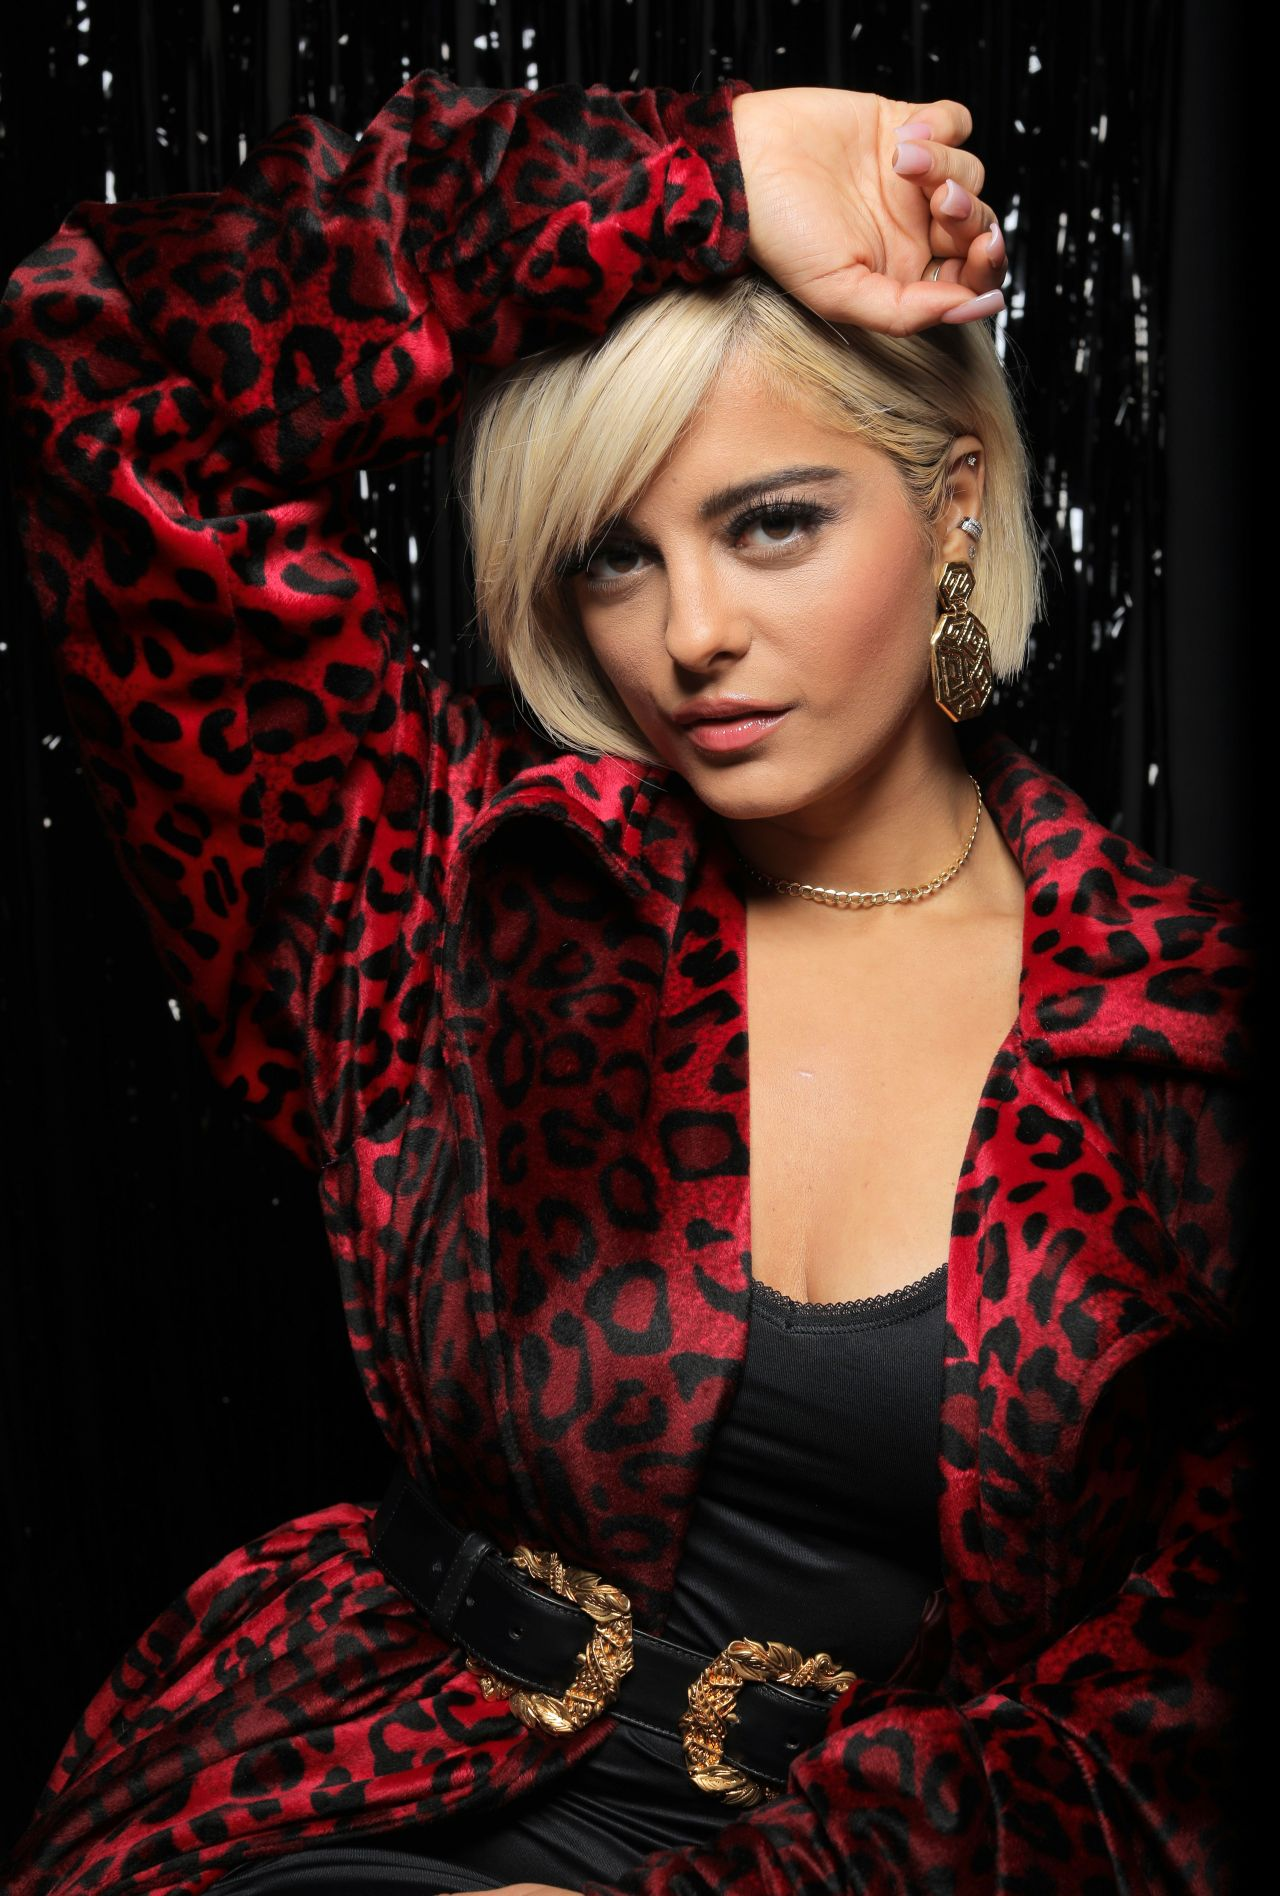 bebe rexha variety hitmakers brunch portait shoot in la